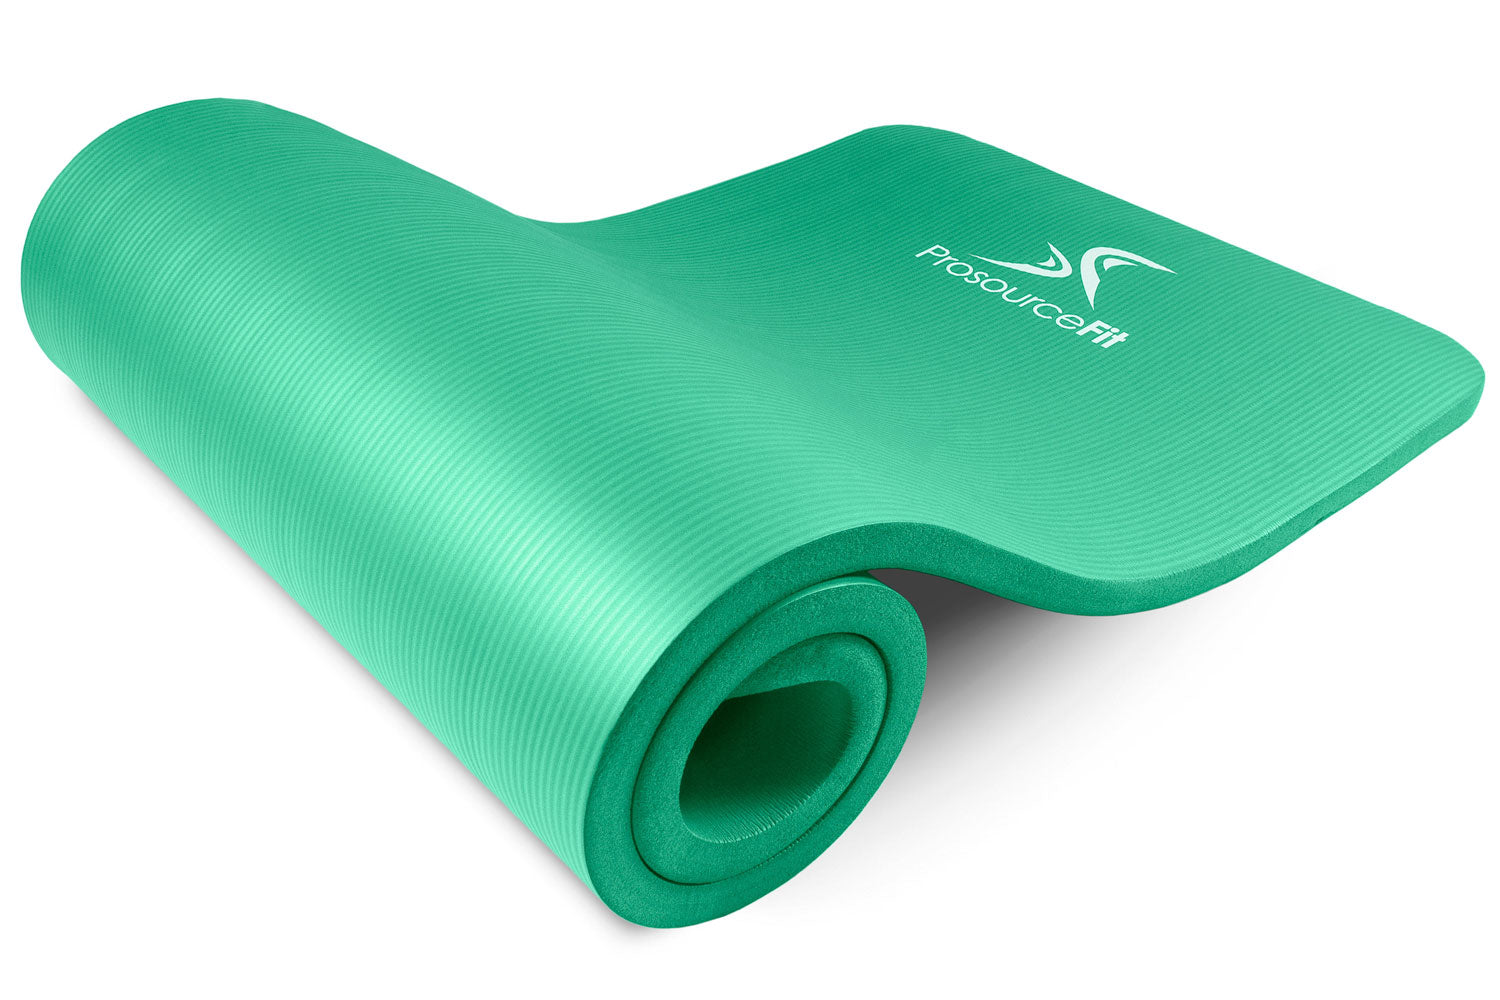 Green Extra Thick Yoga and Pilates Mat 1 inch